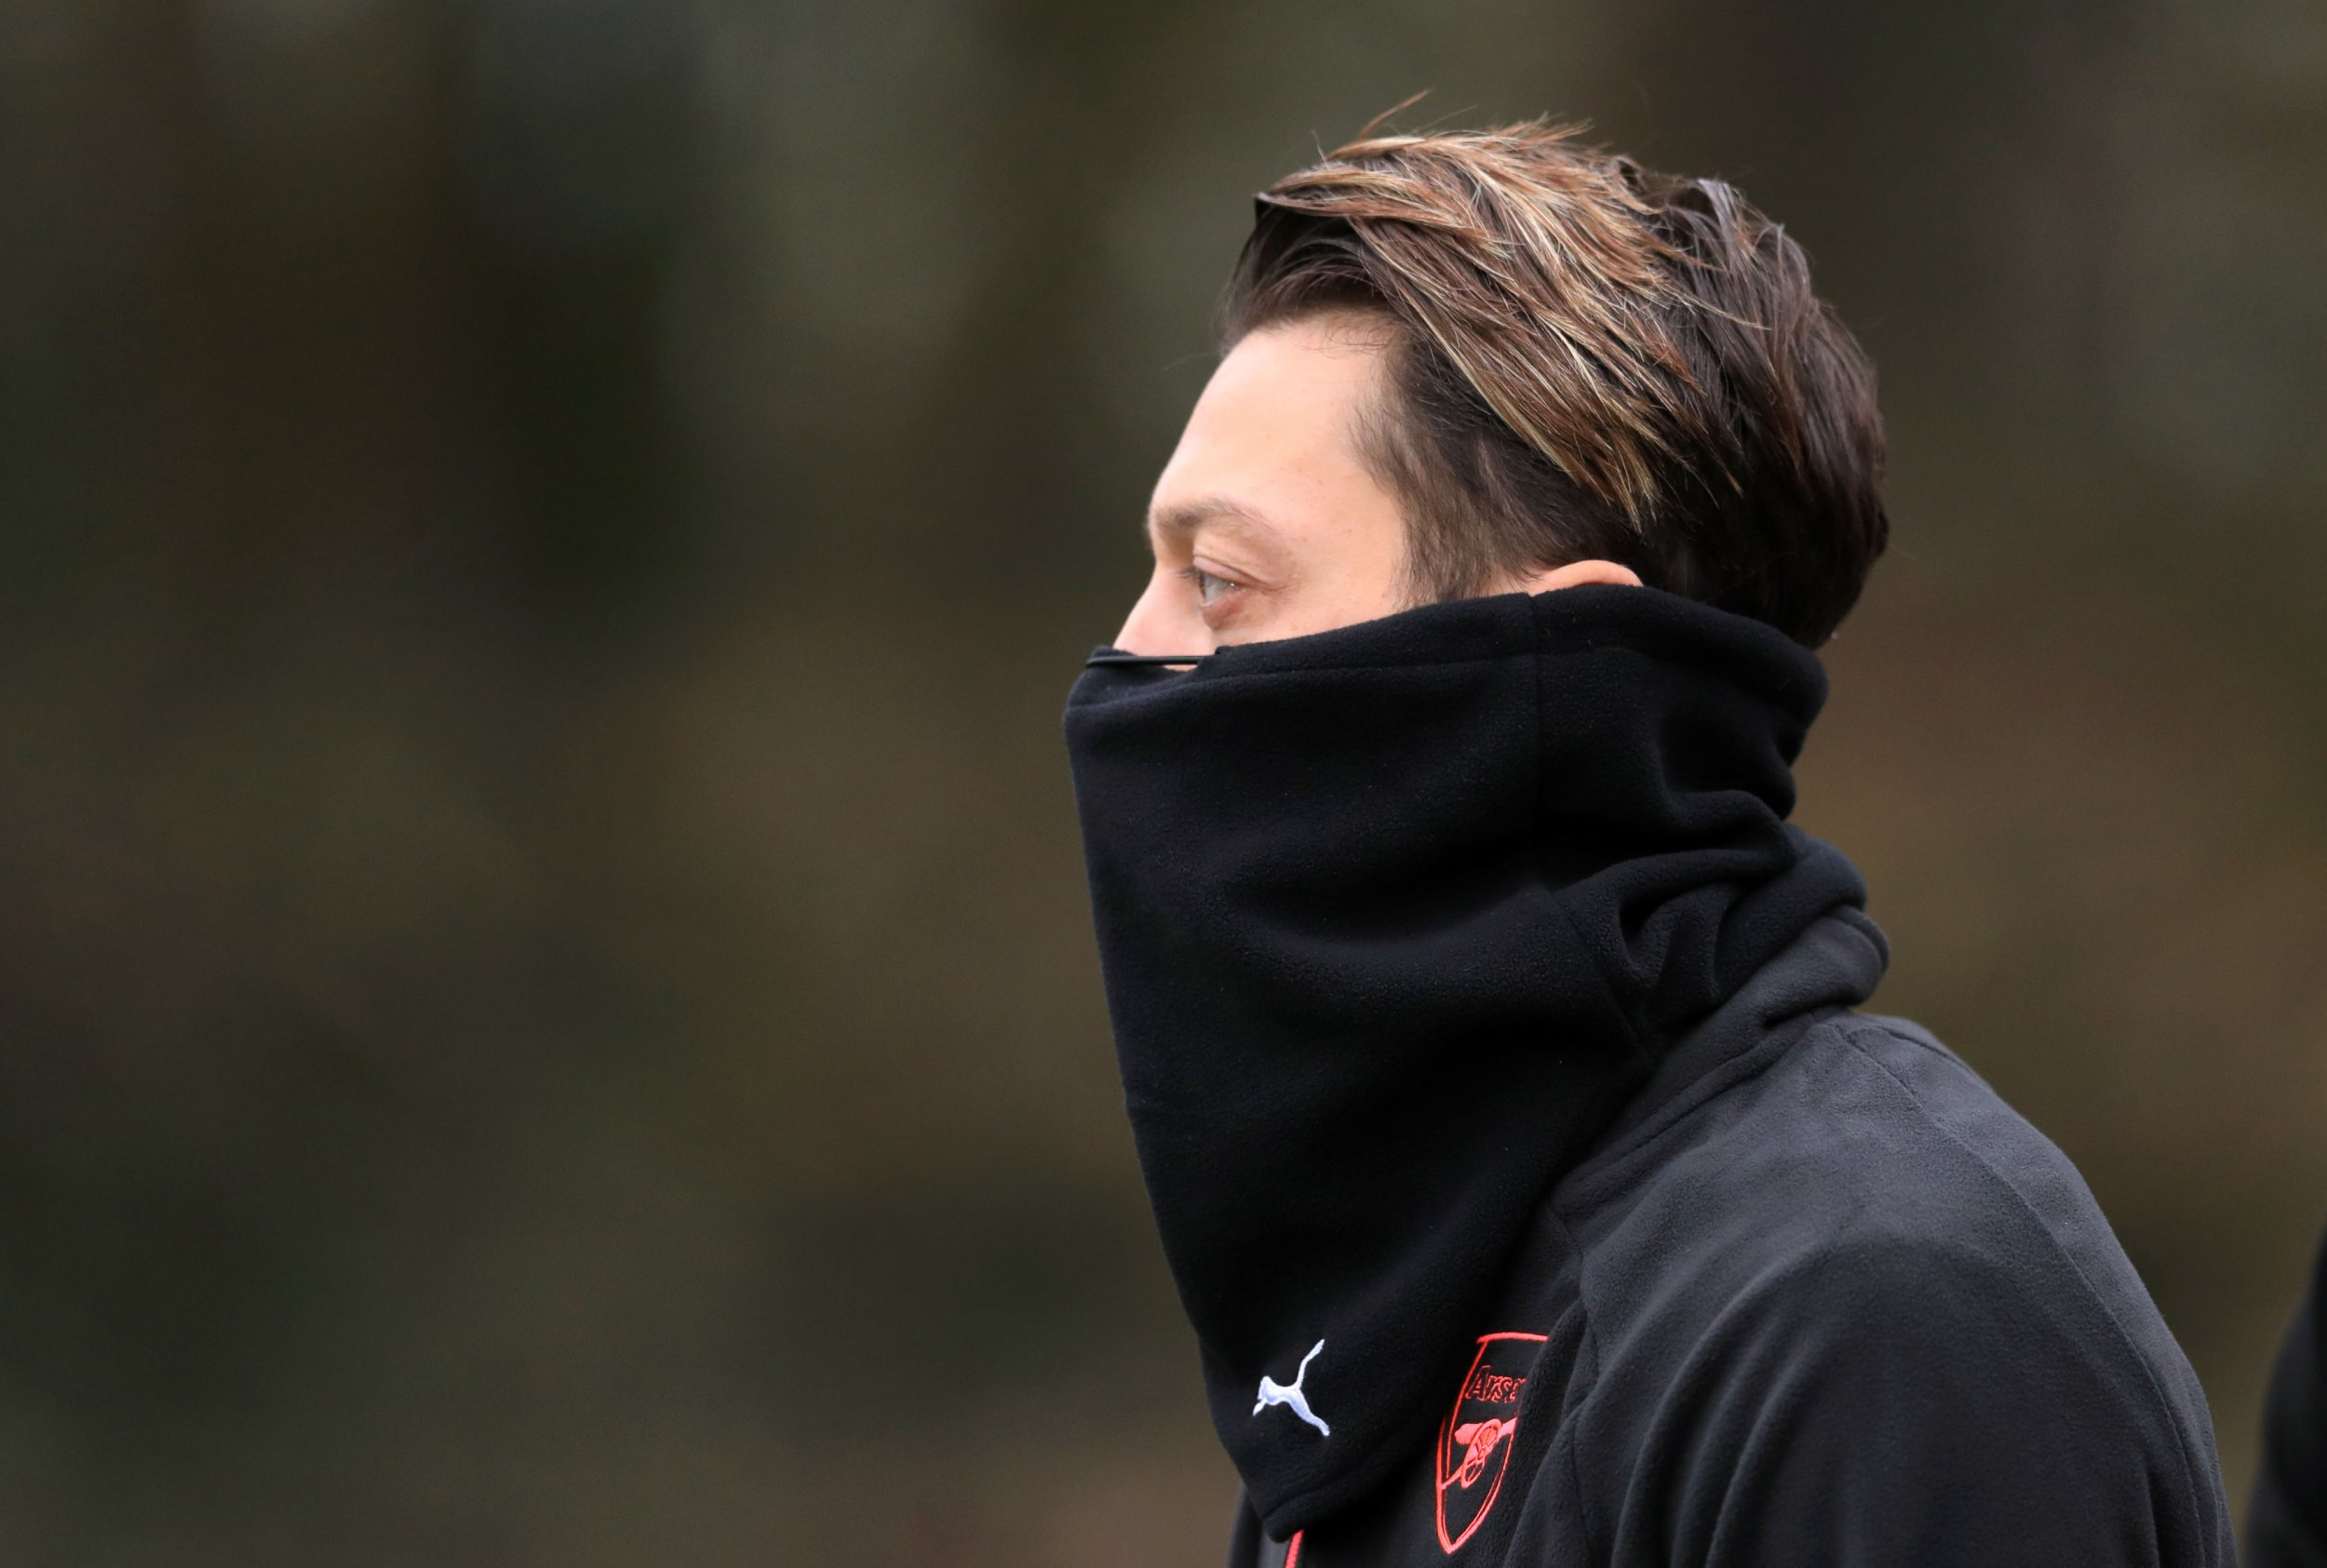 Mesut Ozil pictured from the side with his hood over his mouth